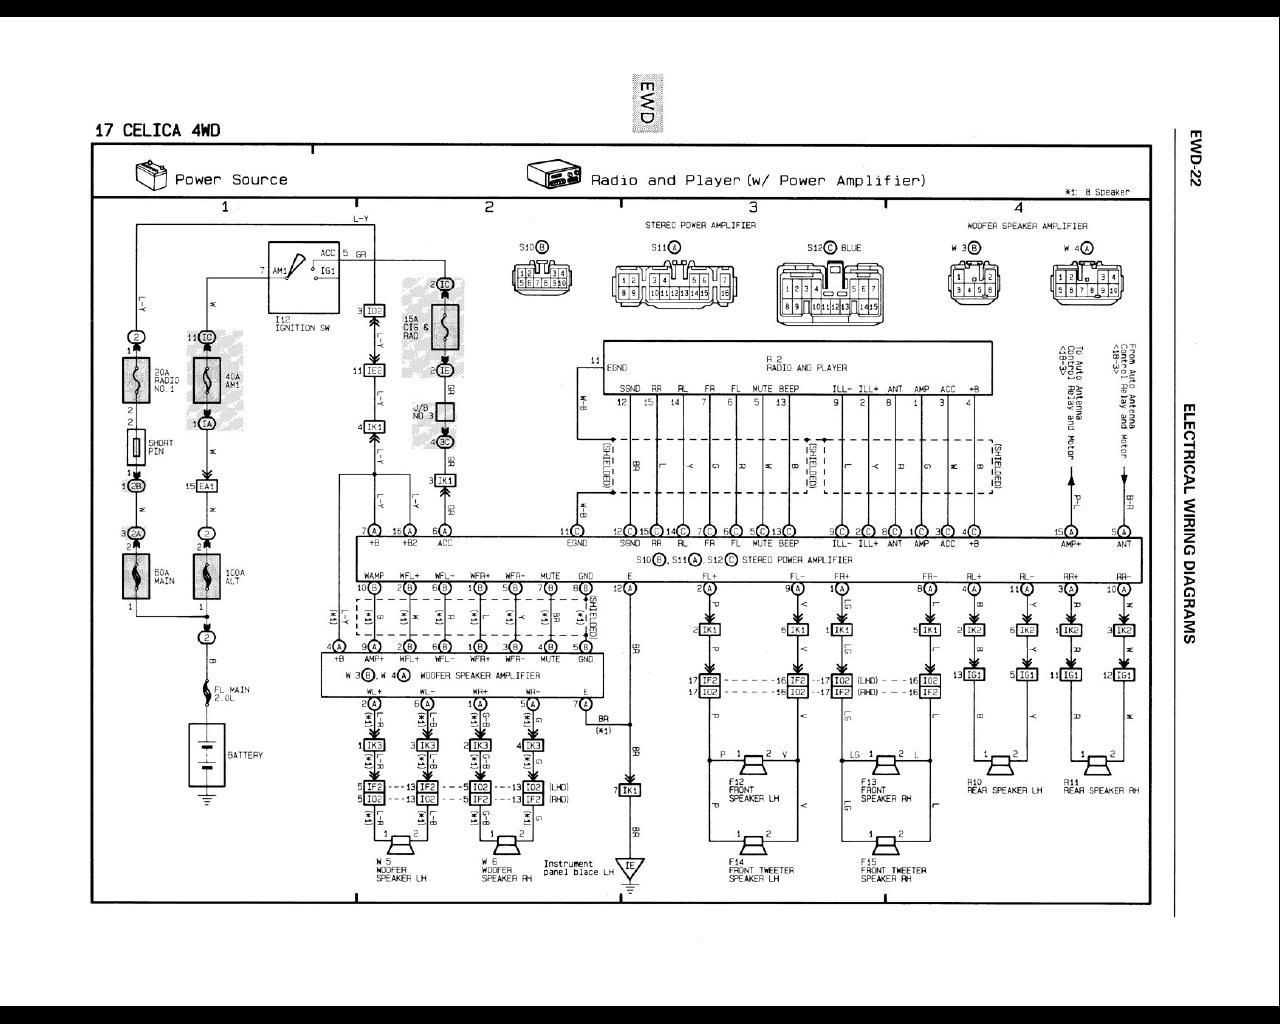 Fujitsu Ten Ftt0068a Diagram Fujitsu Ten Wiring Diagram Unique Of Fujitsu Ten Ftt0068a Diagram